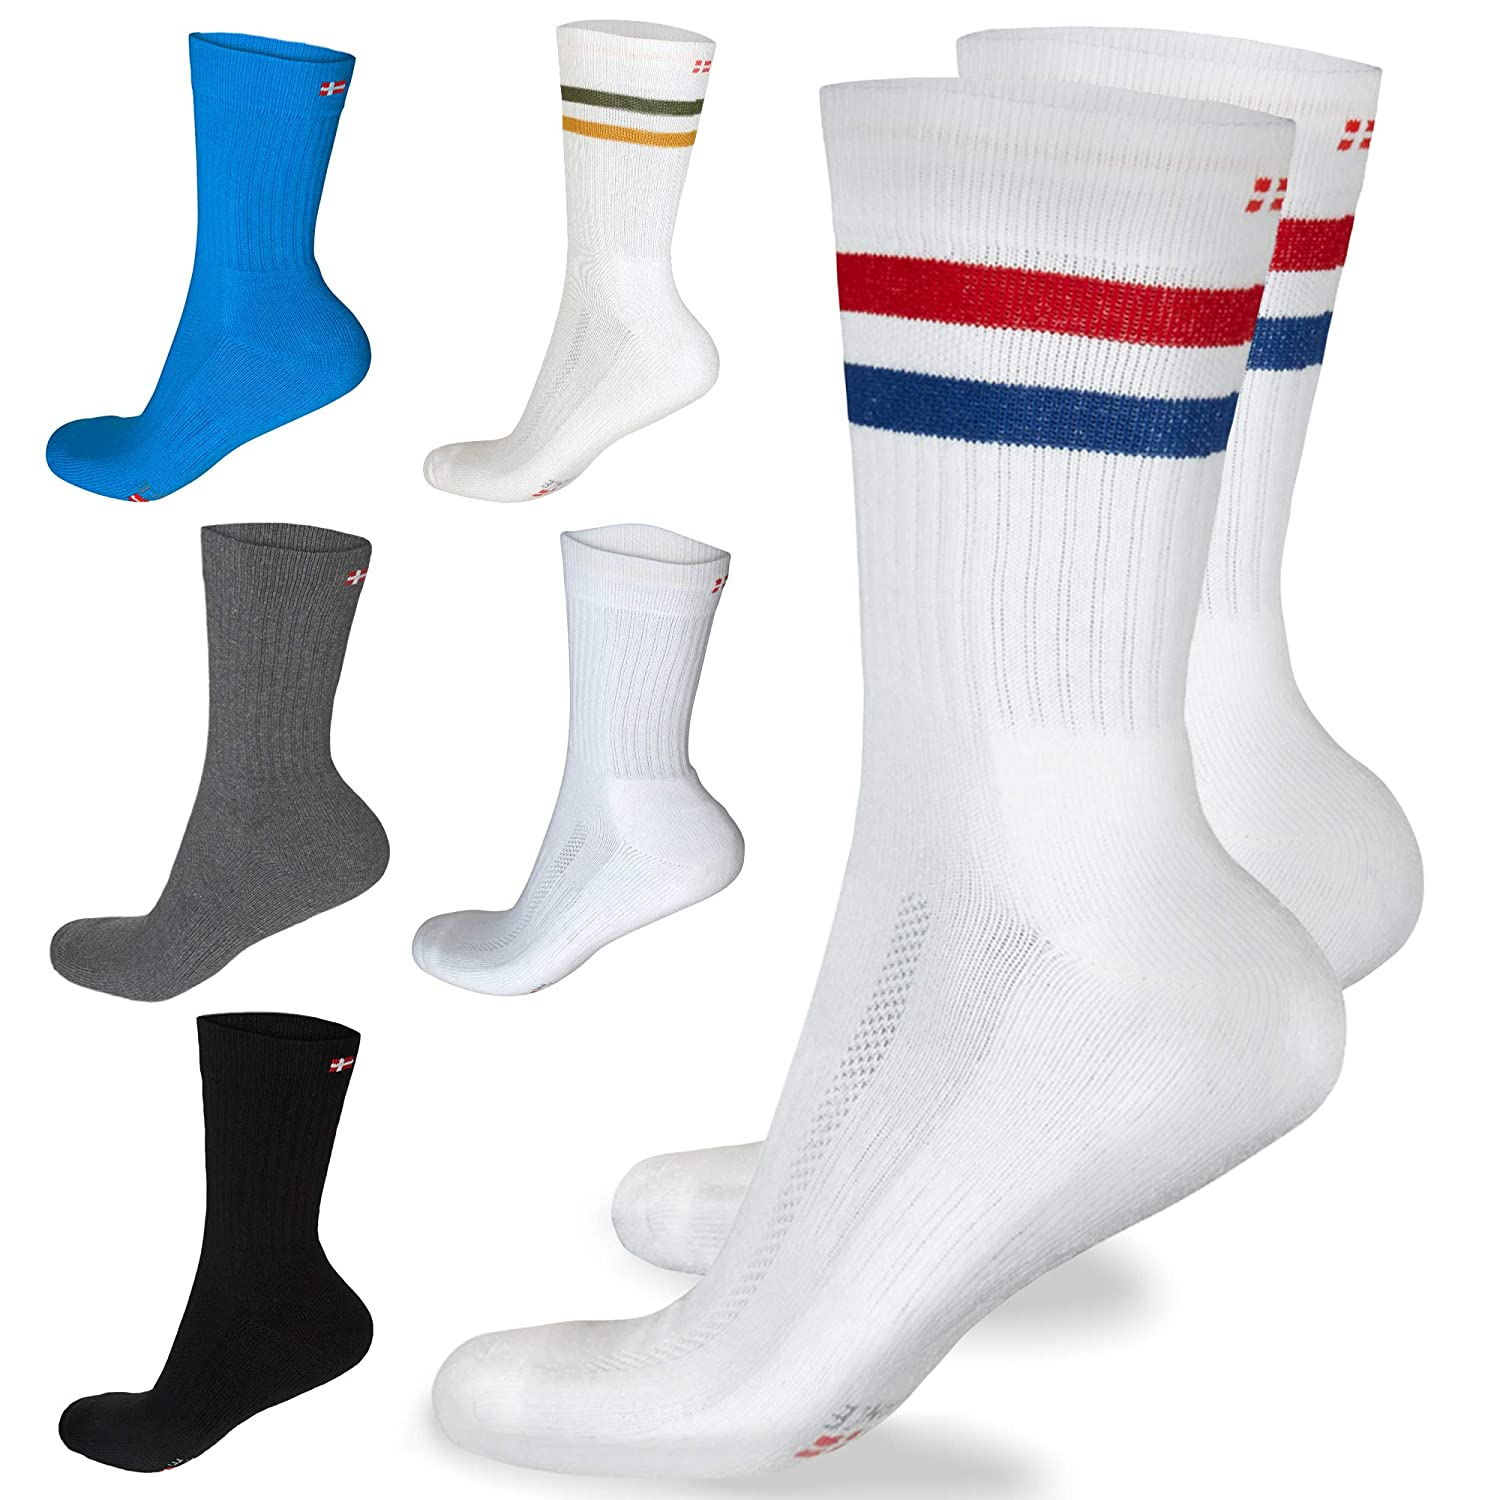 DANISH ENDURANCE Performance Crew Tennis Socks, Moisture Control, Soft Cushion, Multi-Pack, Men's & Women's